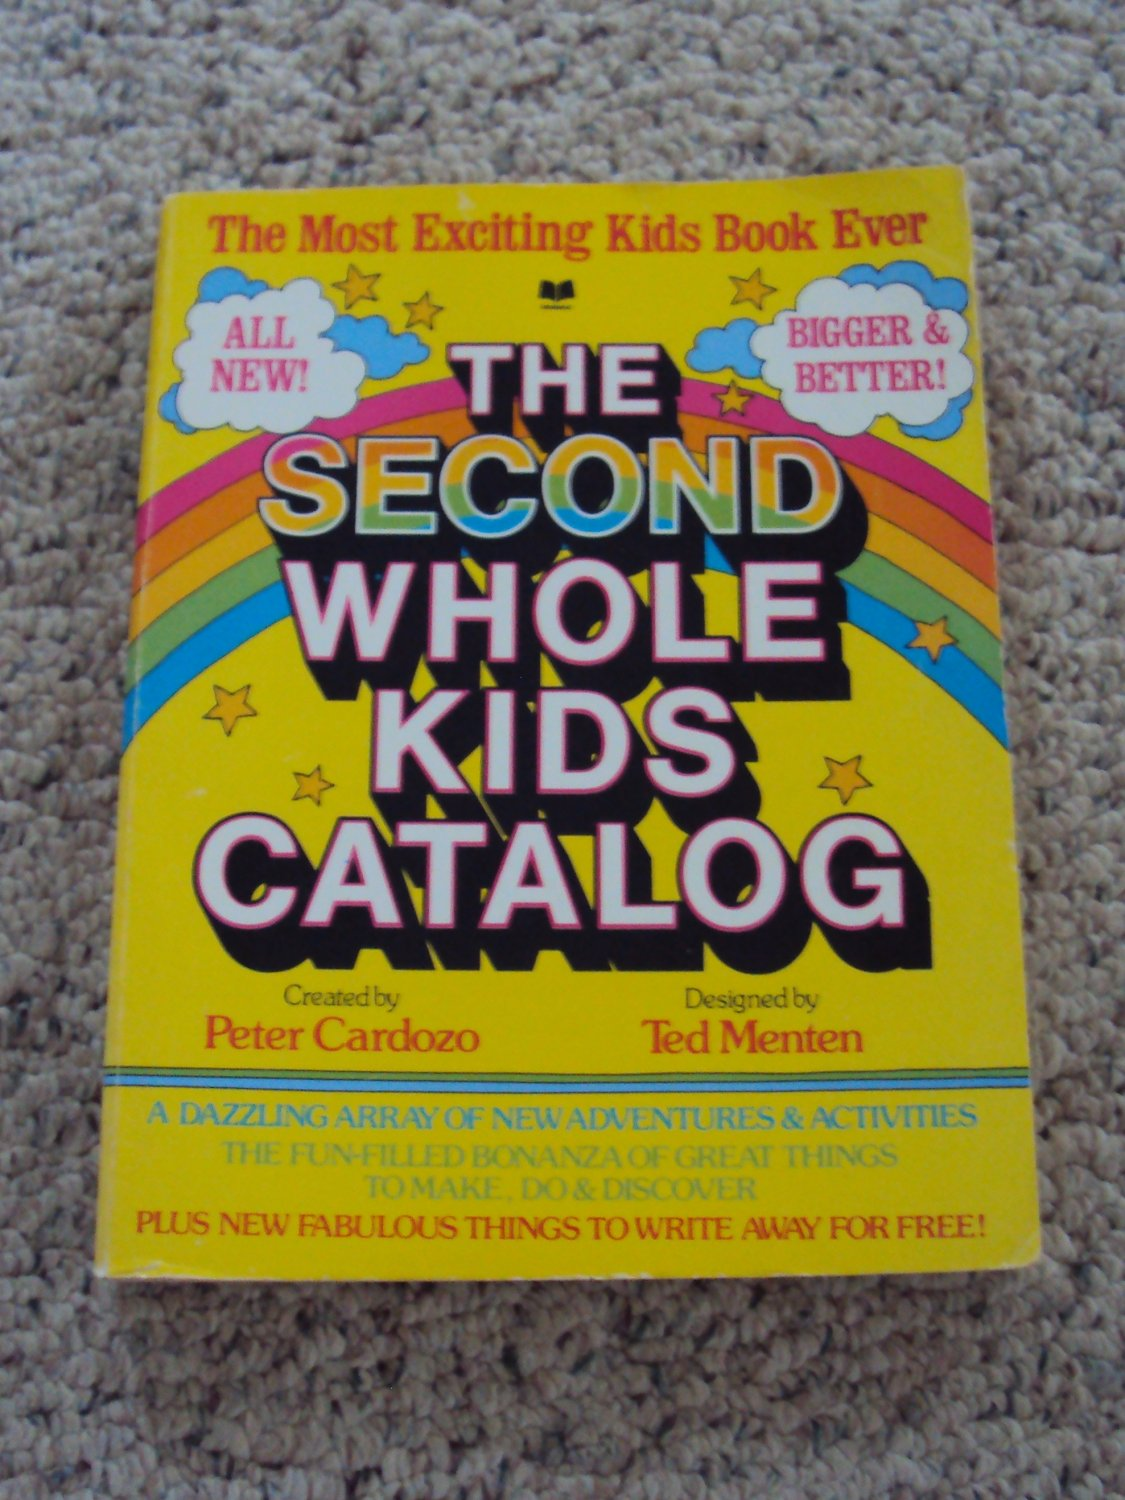 The Second Whole Kids Catalog, 1977